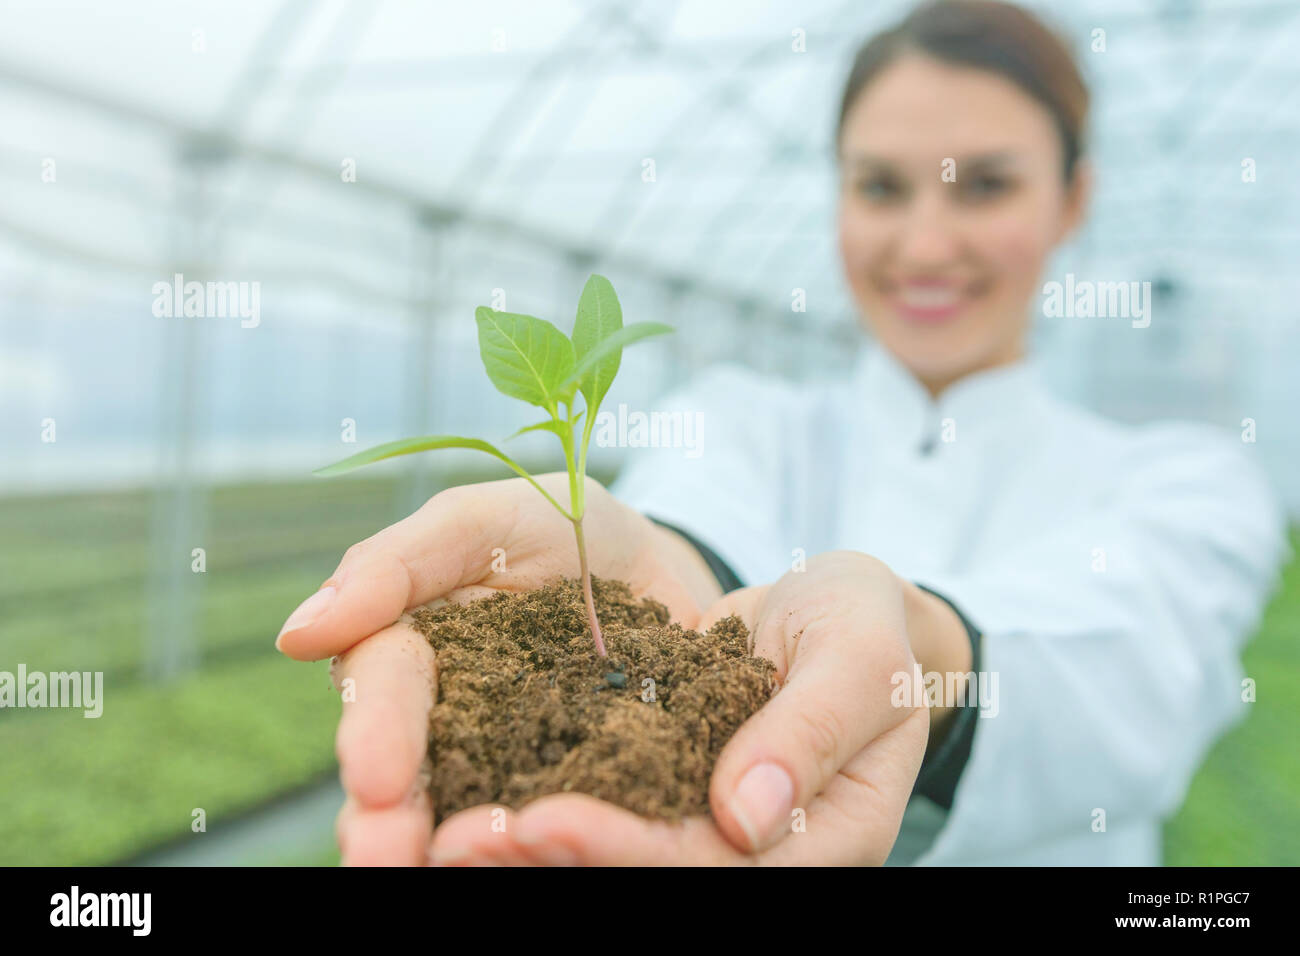 Woman hands holding green plant in soil. New life concept. - Stock Image